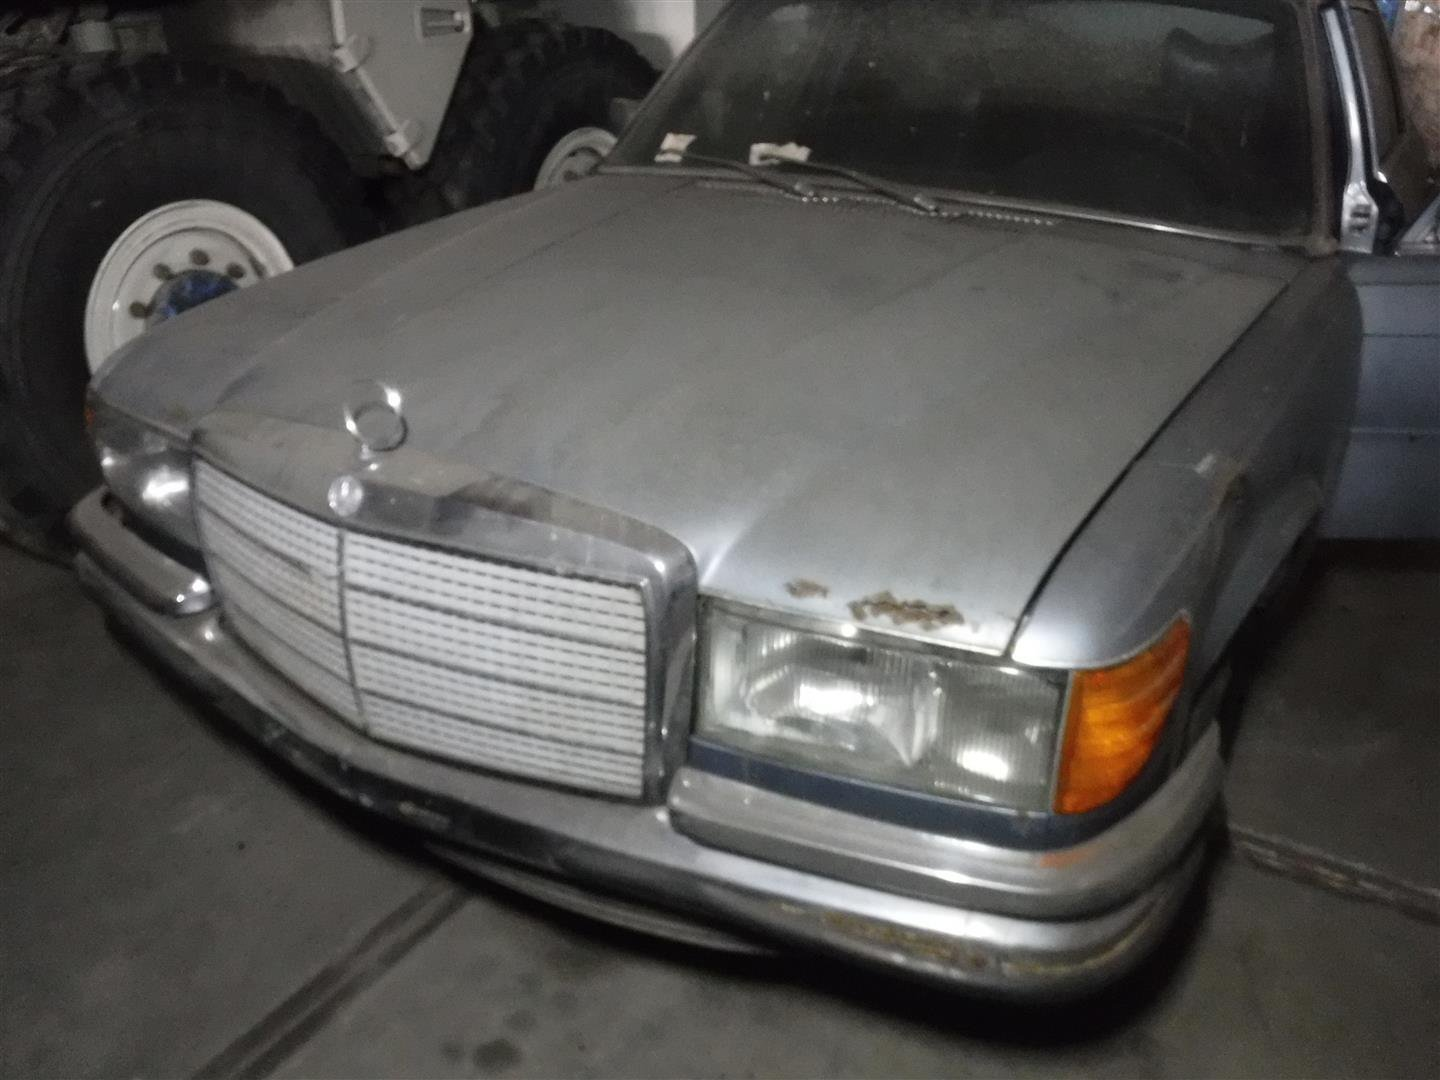 1977 Mercedes Benz 450SE '77 For Sale (picture 5 of 6)